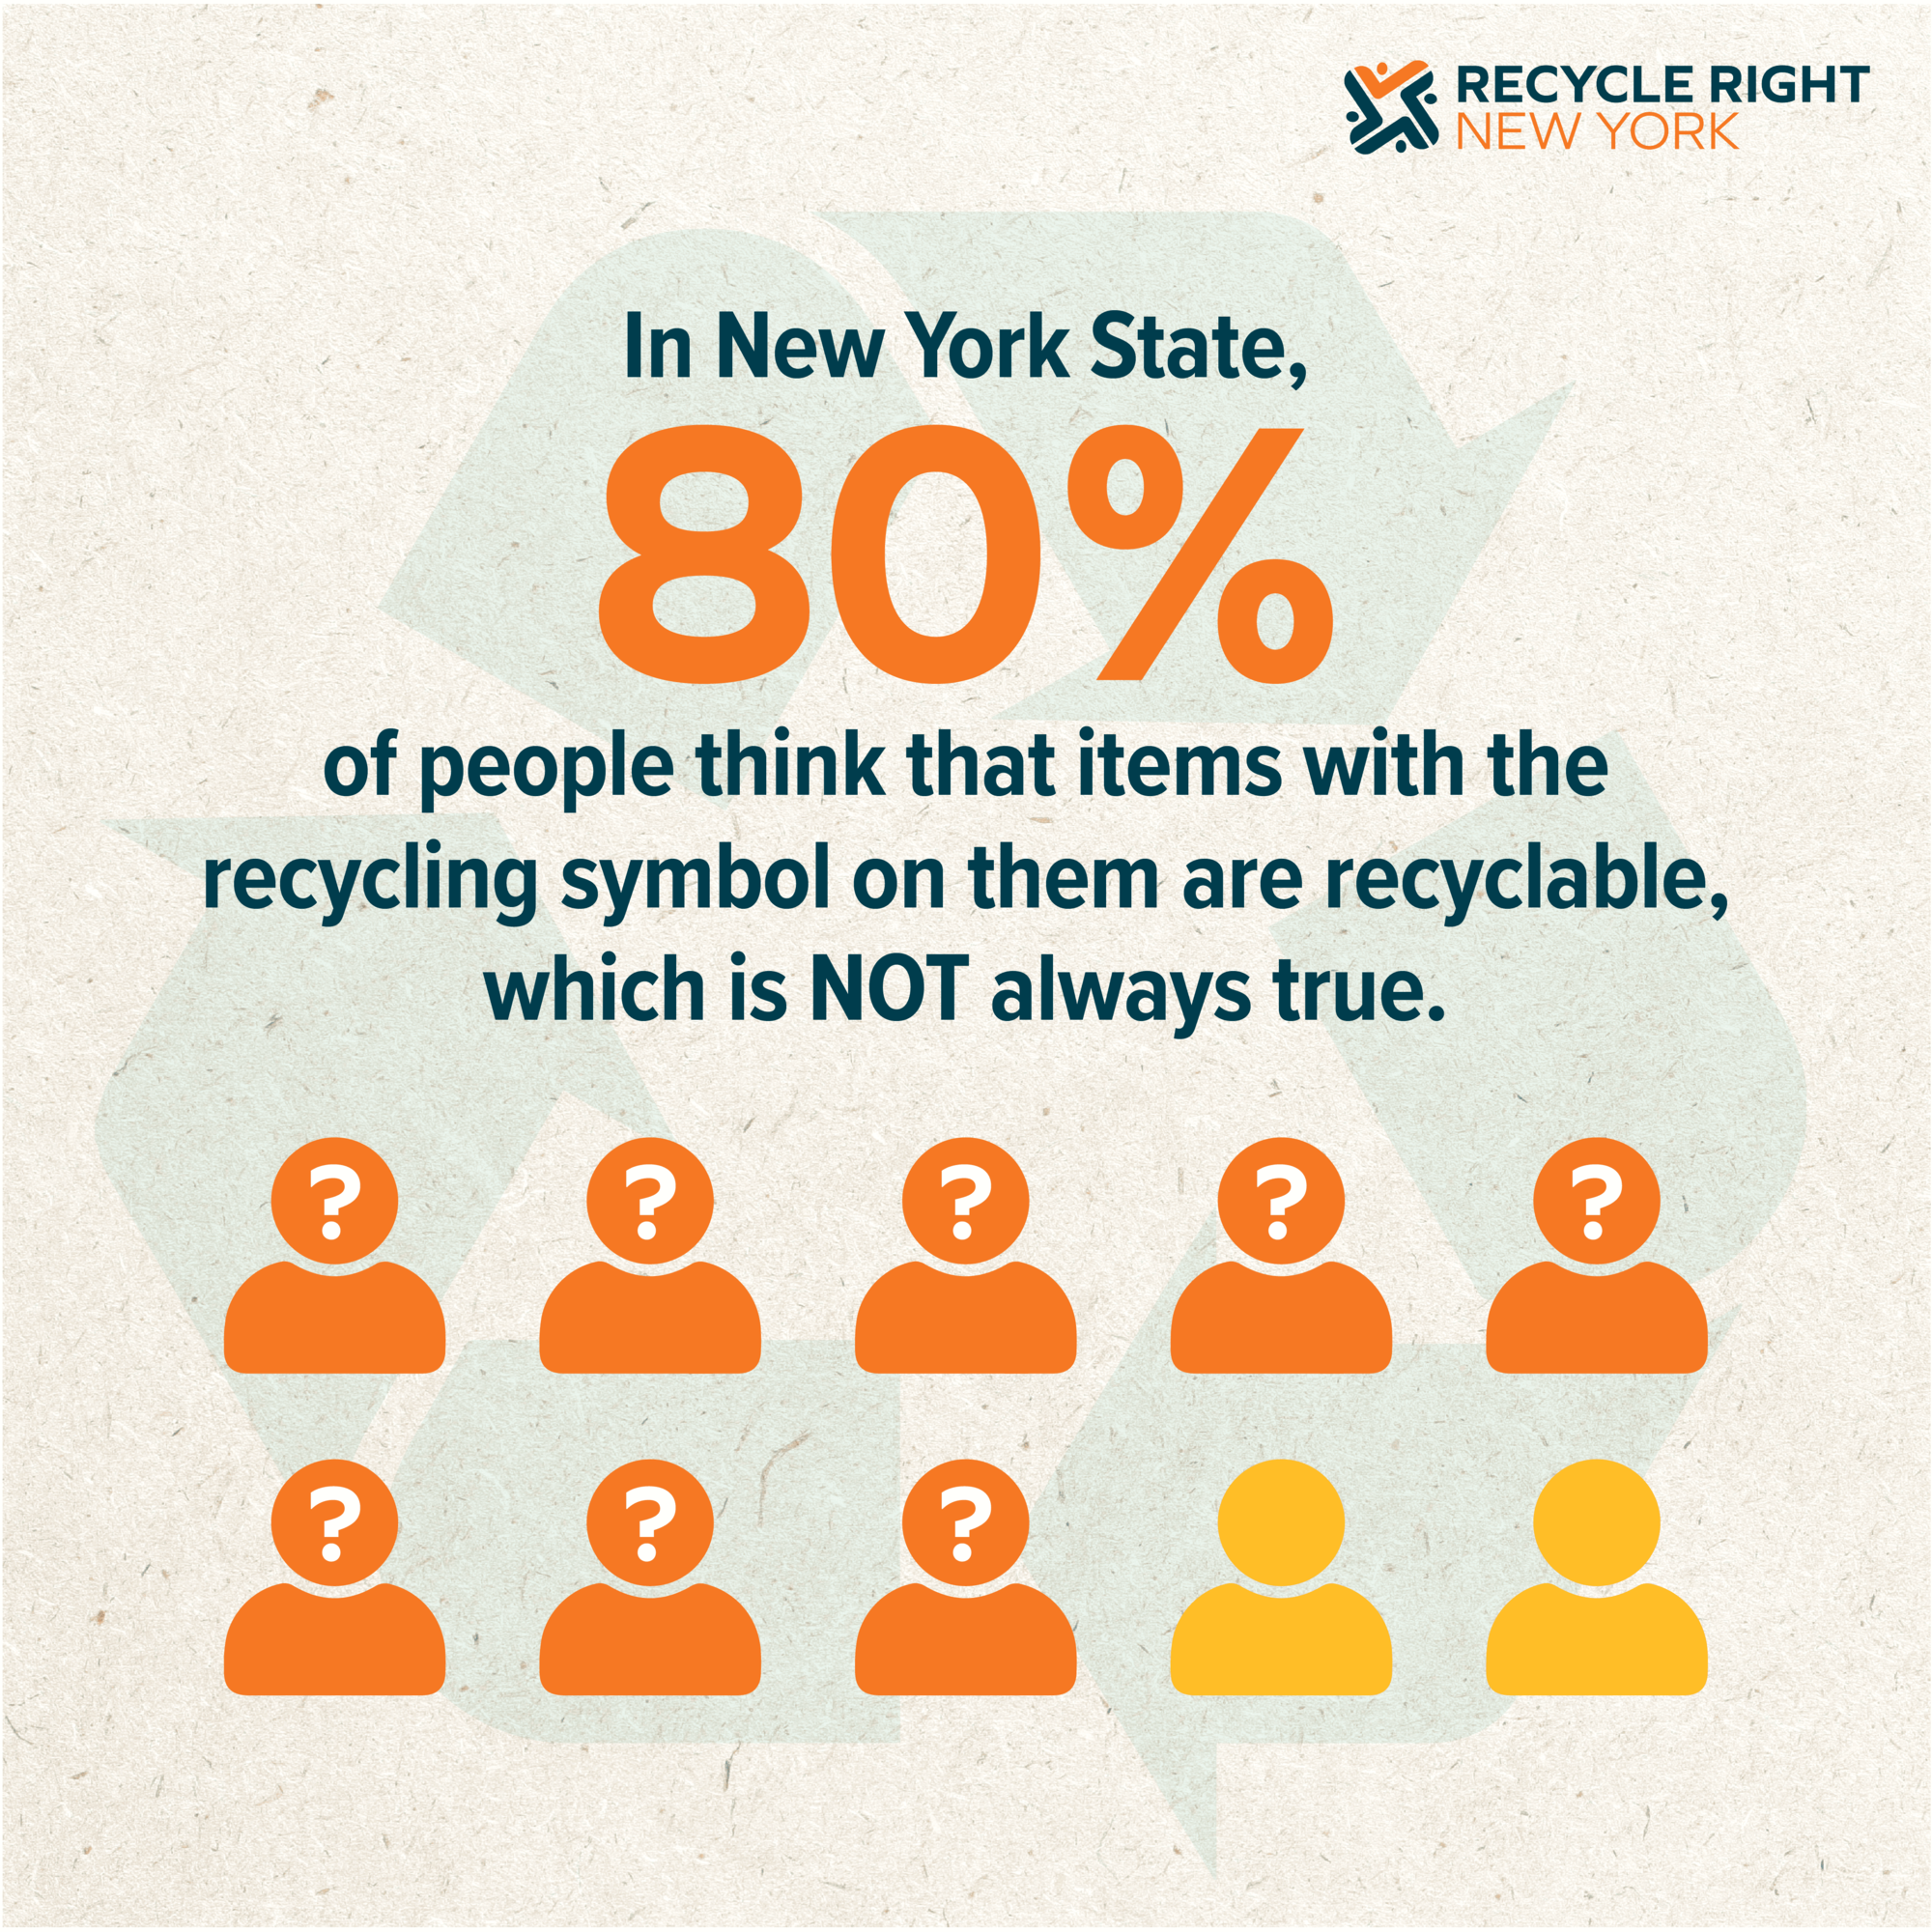 Not everything with a recycling symbol is recyclable.